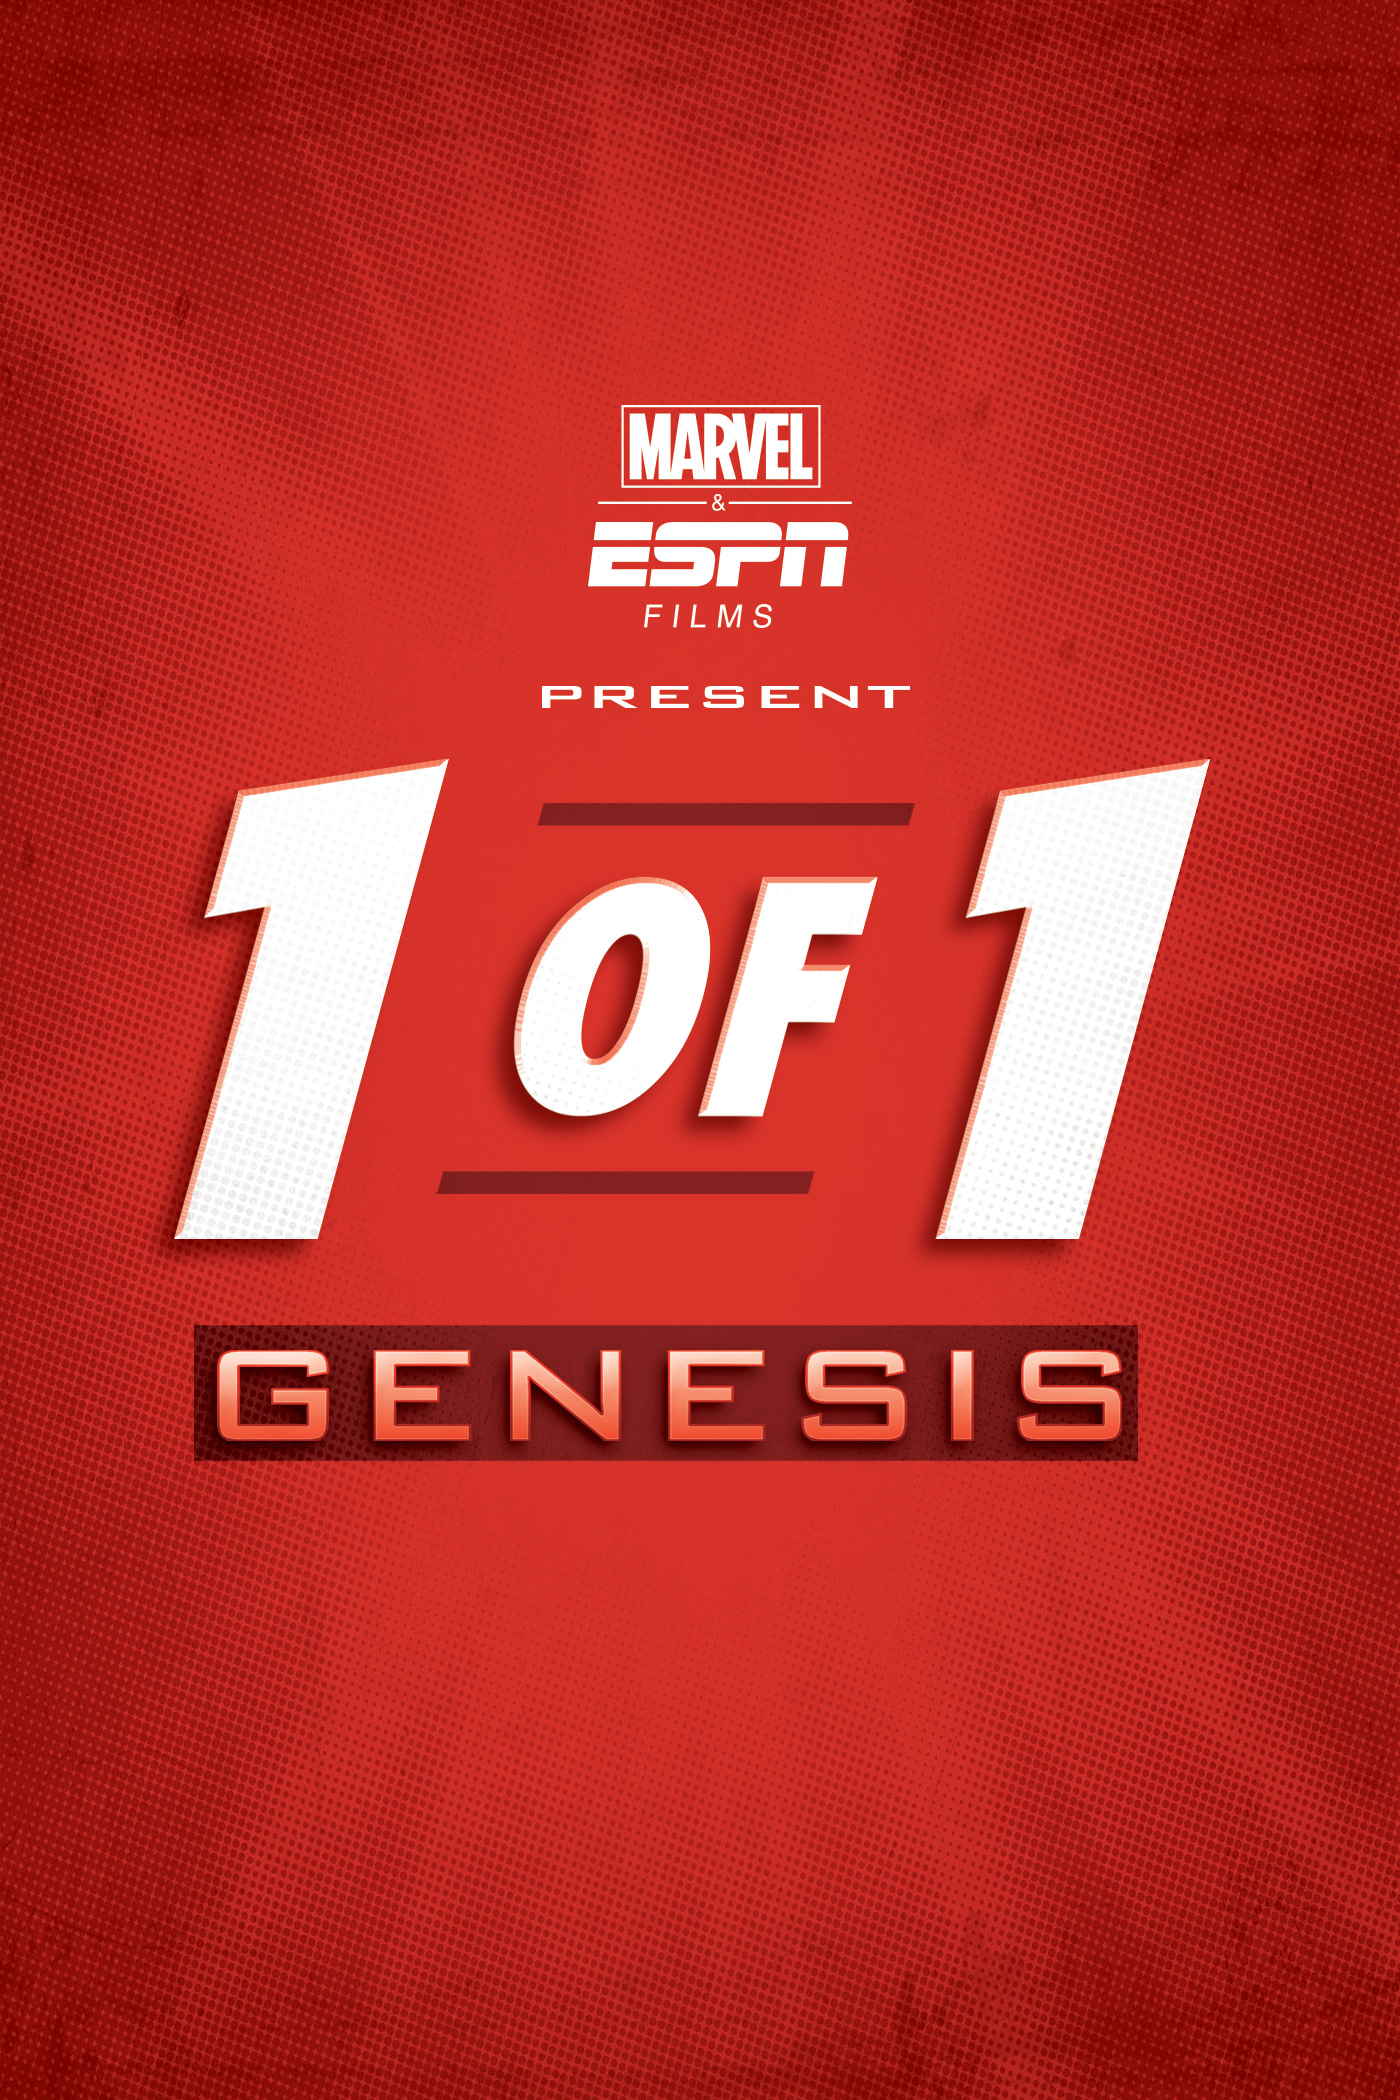 Marvel & ESPN Films Present: 1 of 1 - Genesis